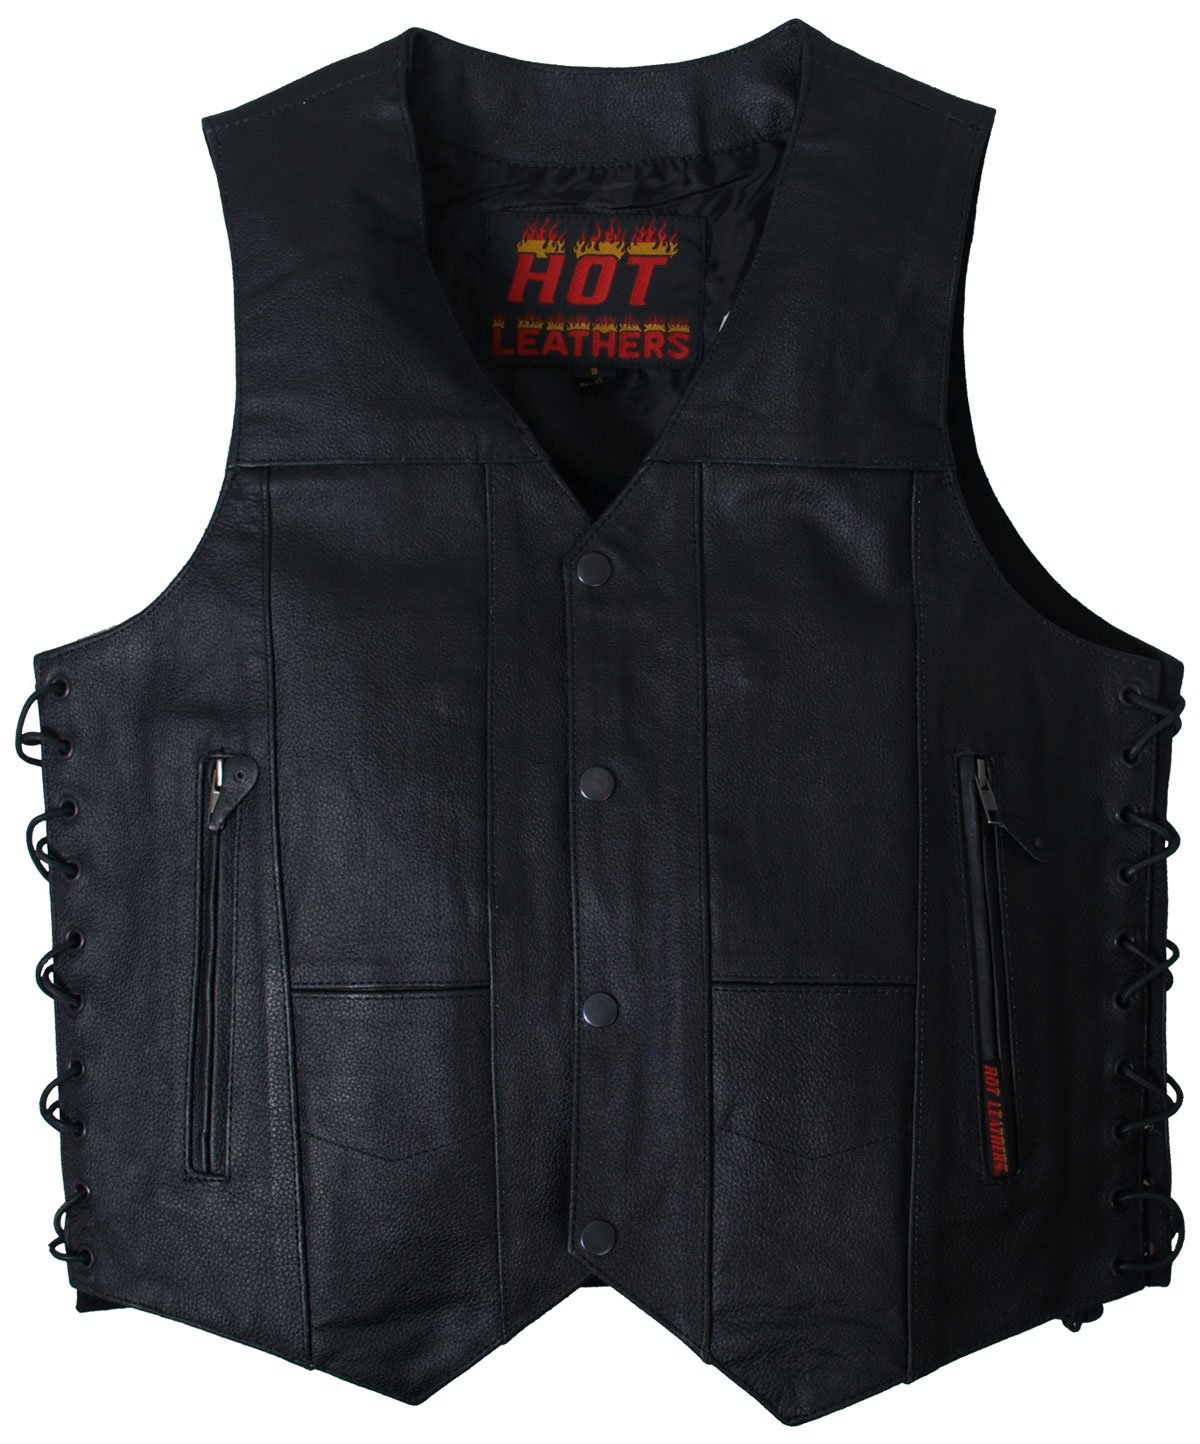 Hot Leathers Men's Ten Pocket Leather Vest (Black, X-Large) by Hot Leathers